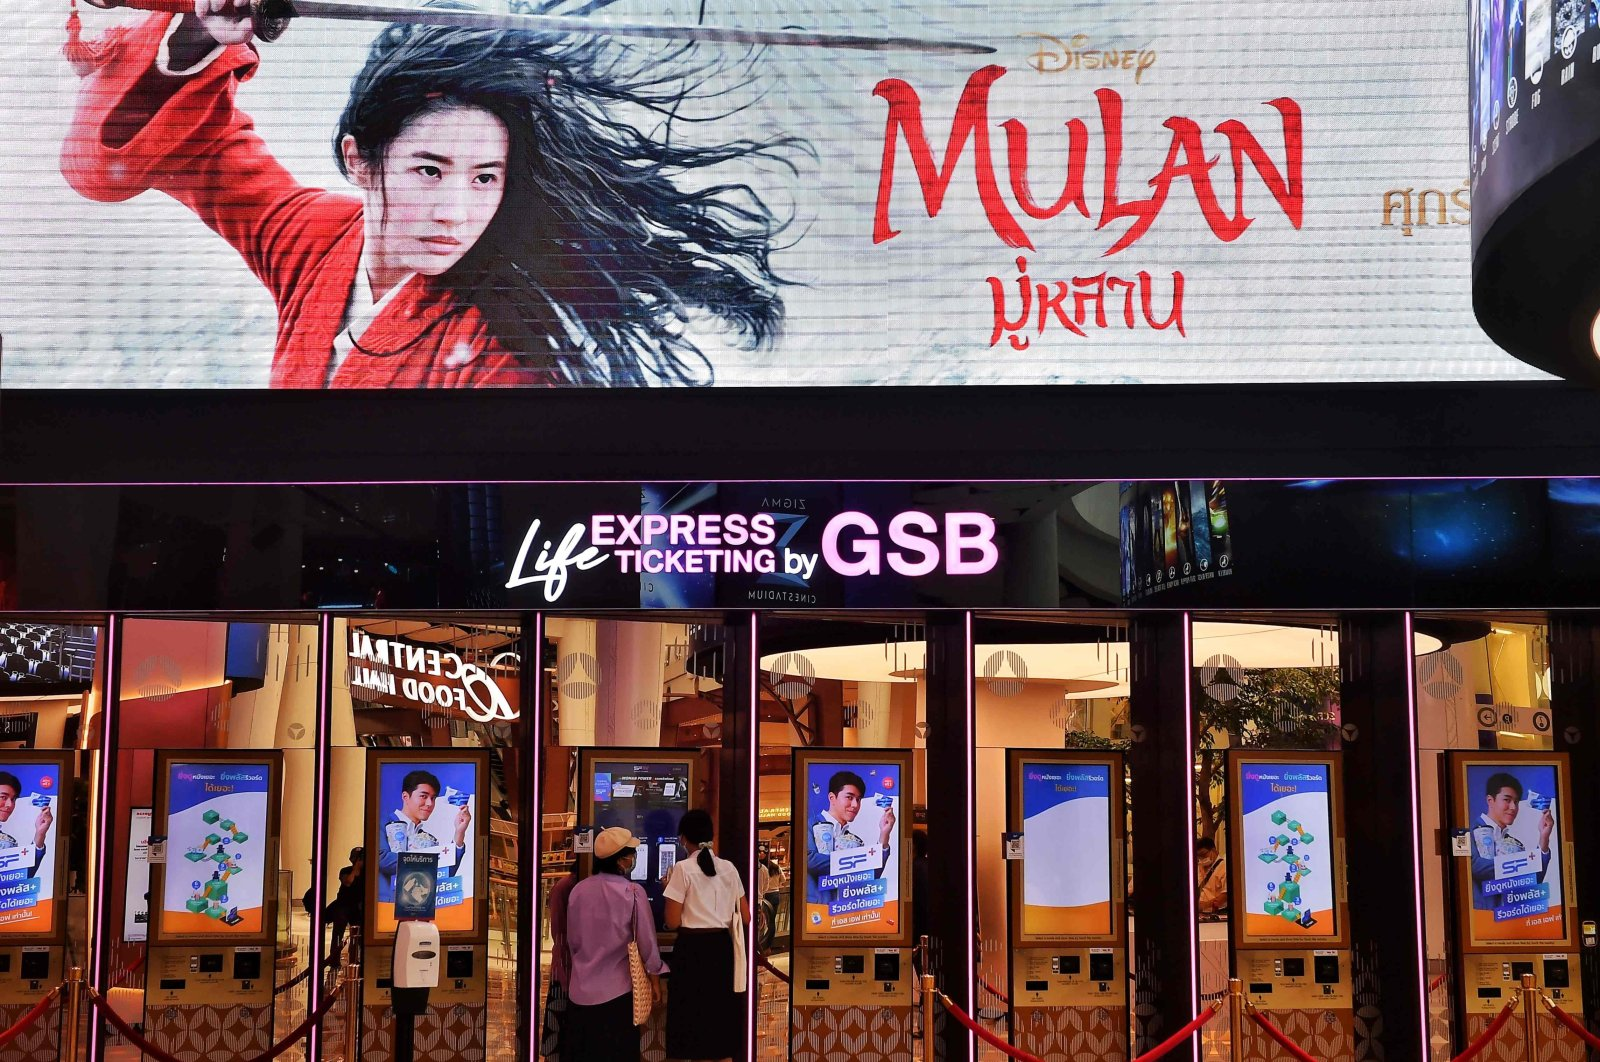 """People buy tickets for Disney's """"Mulan"""" film at a cinema inside a shopping mall in Bangkok, Thailand, Sept. 8, 2020. (AFP Photo)"""